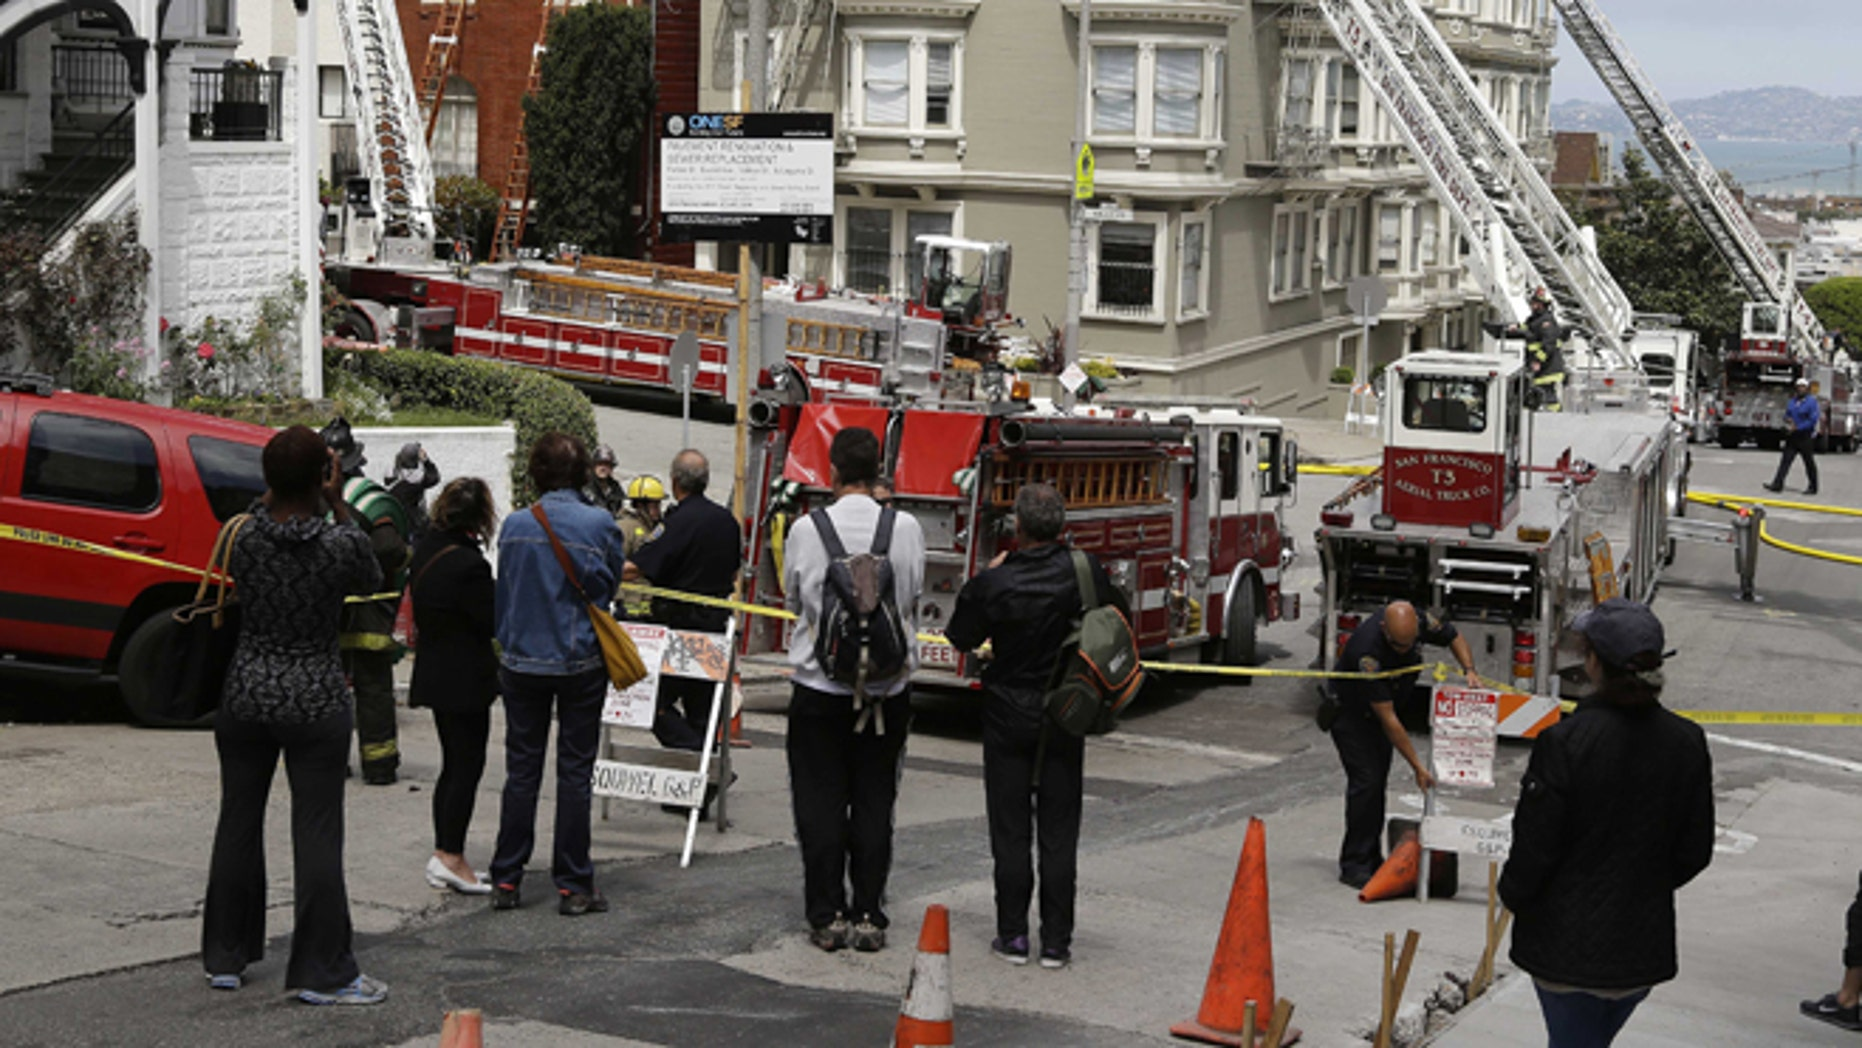 April 24: People watch firemen contain a fire at a multi-unit building at left following a fire in San Francisco.